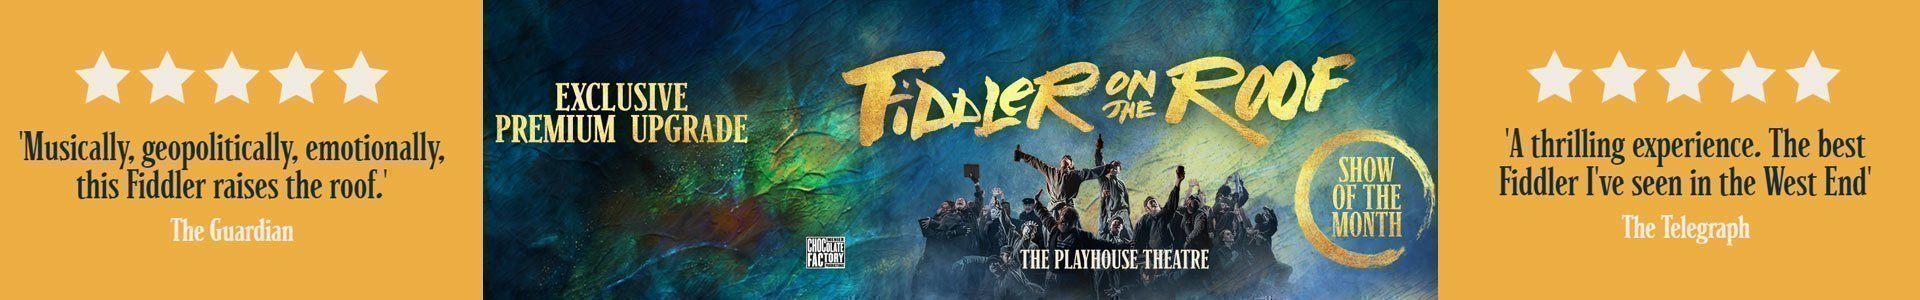 Fiddler On The Roof - Show Of The Month - Exclusive Upgrade